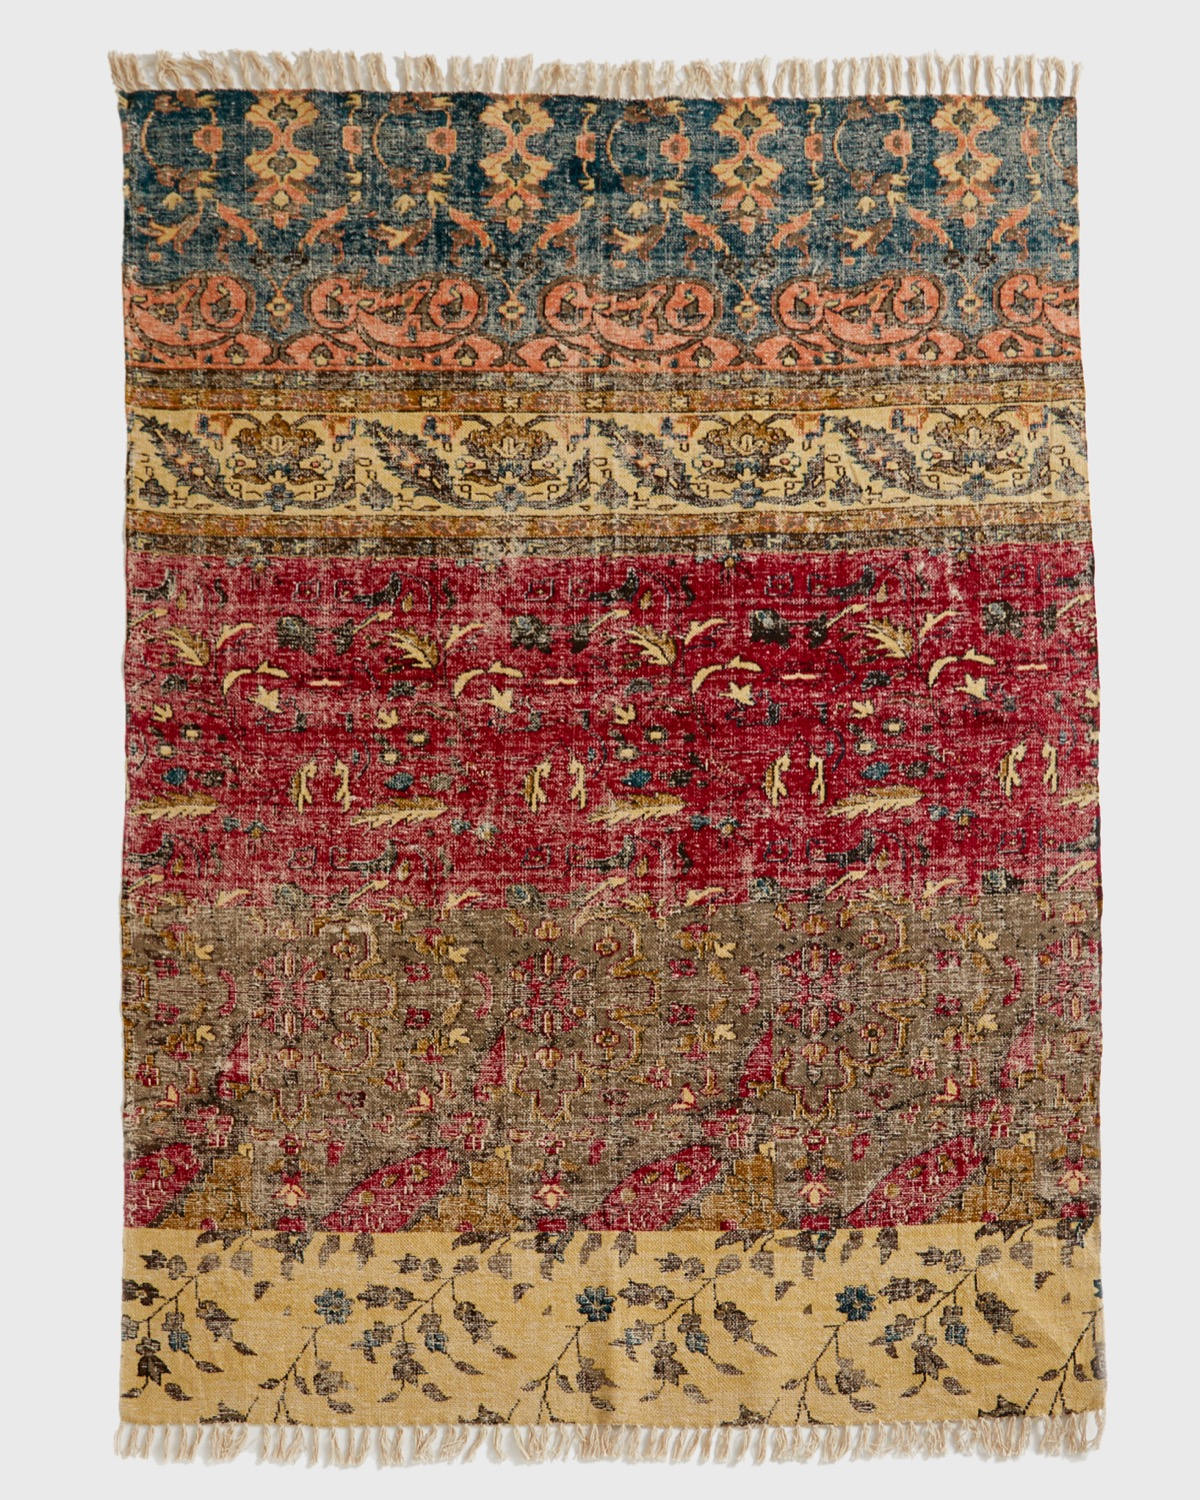 Multi Carolyn Donnelly Eclectic Mojave Rug